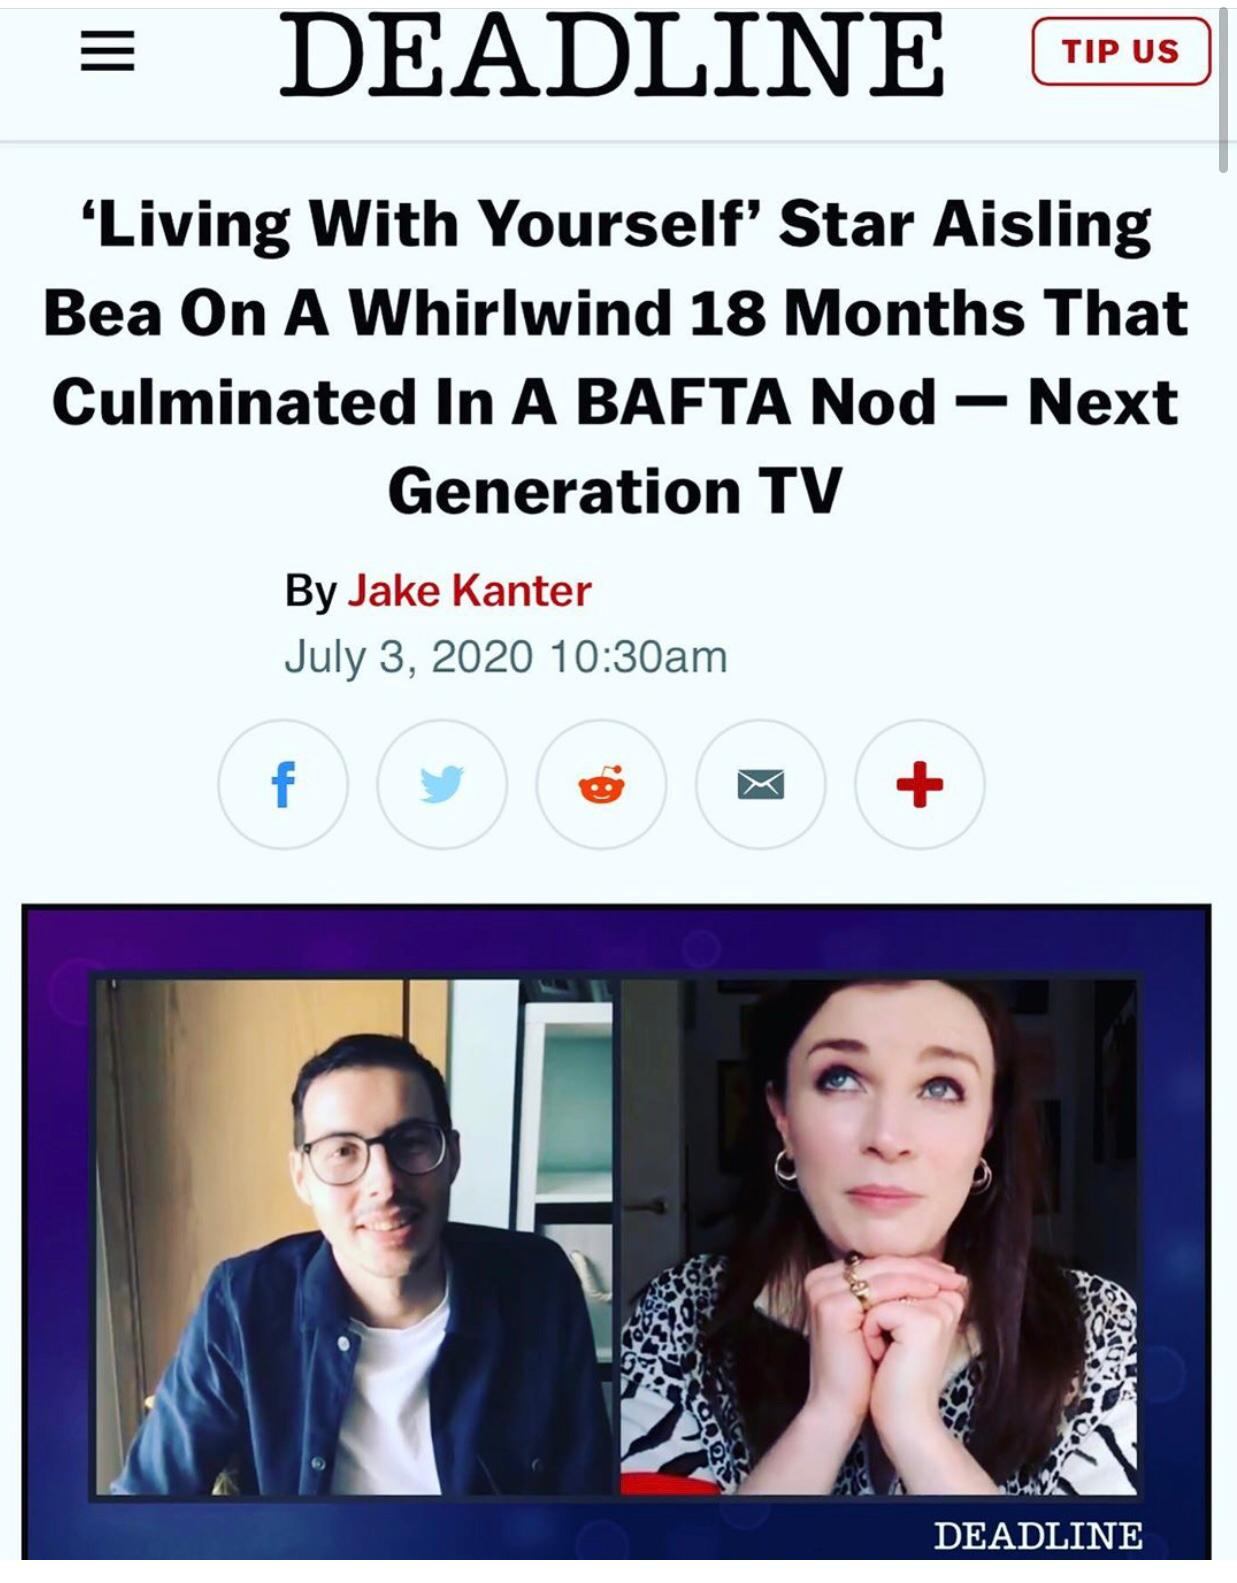 'Living With Yourself' Star Aisling Bea On A Whirlwind 18 Months That Culminated In A BAFTA Nod — Next Generation TV  - July 3rd, 2020